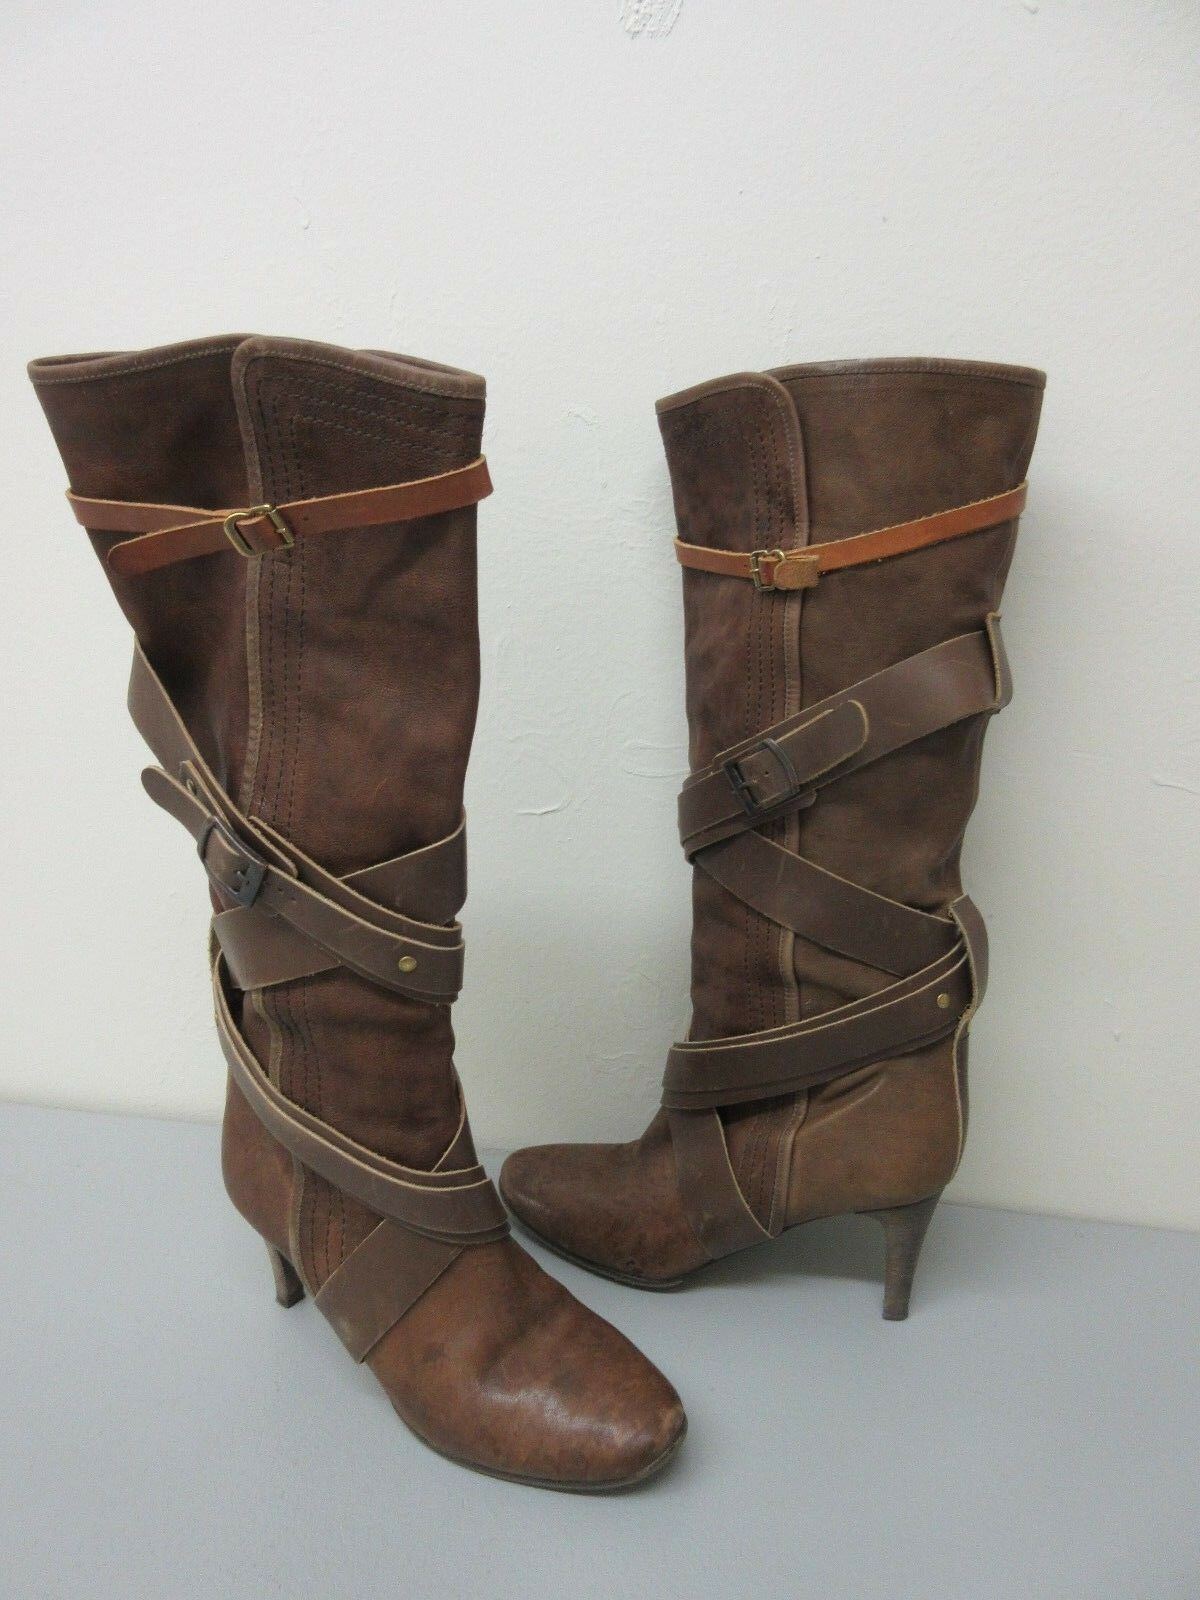 Chloe Made in Italy Brown Pelle 'Paddington' Strappy Wrap Boot Size 38